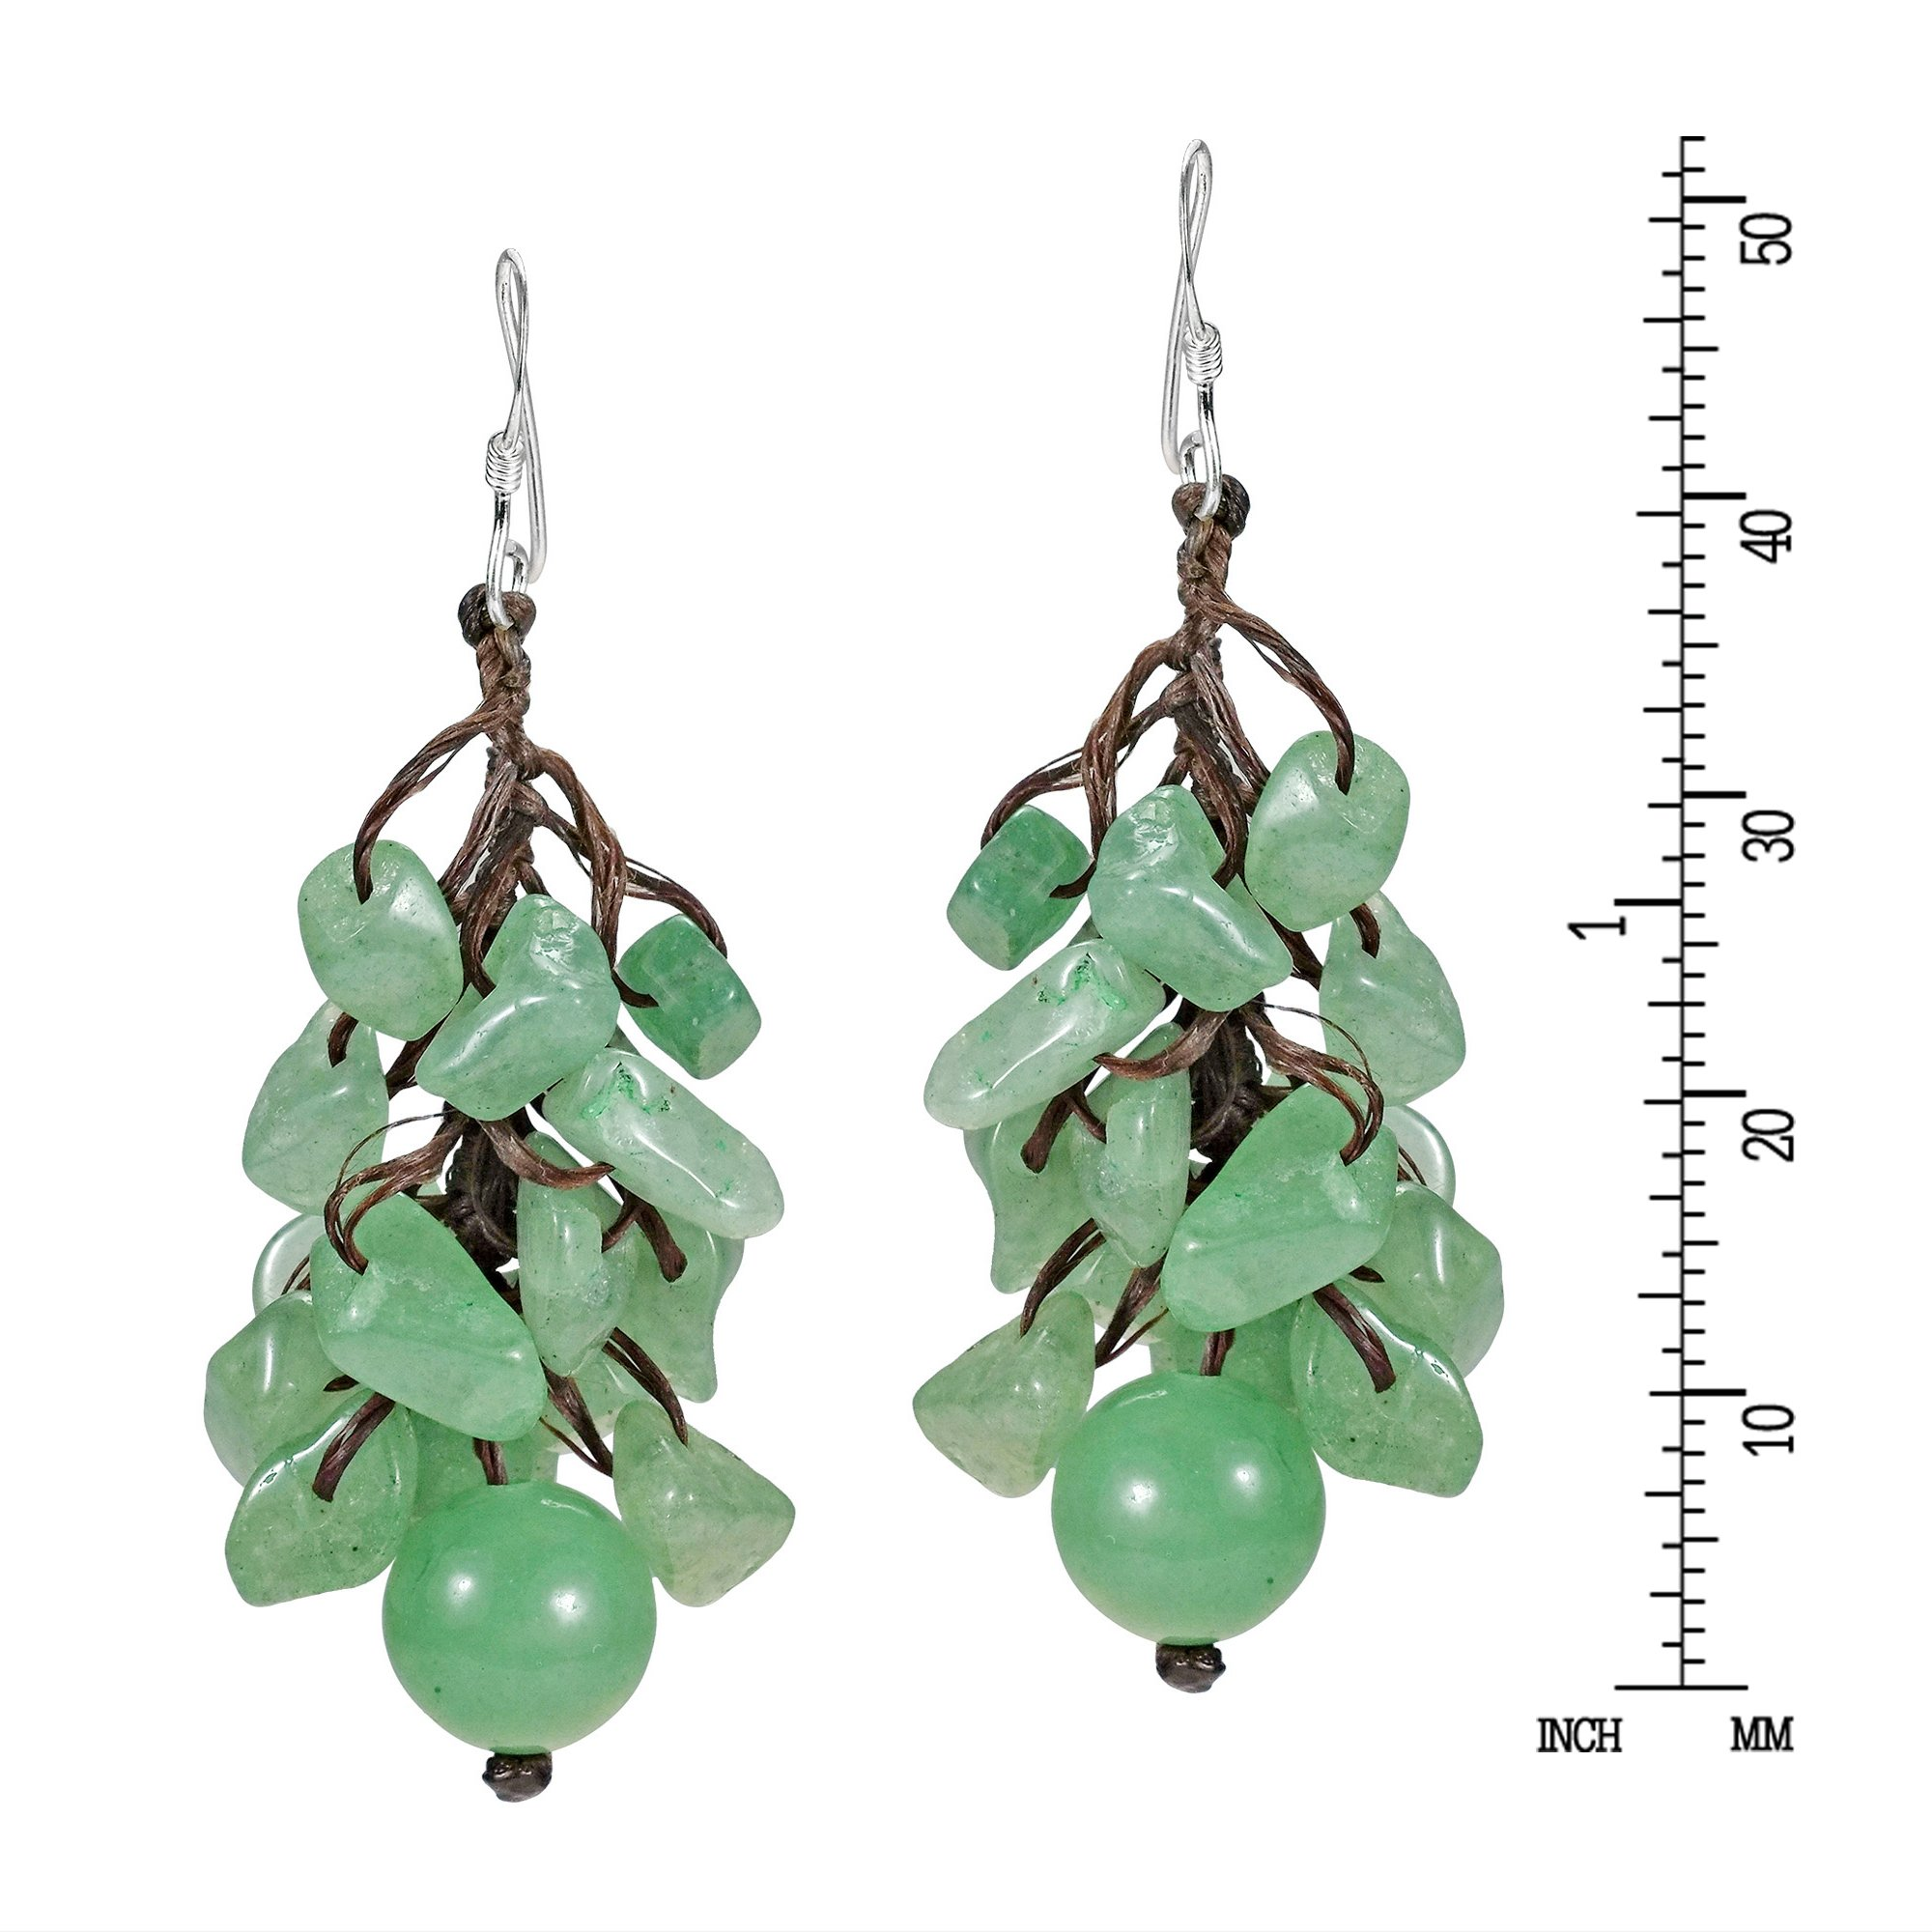 Dangle Cluster Ball Simulated Aventurine Sterling Silver Earrings by AeraVida (Image #3)